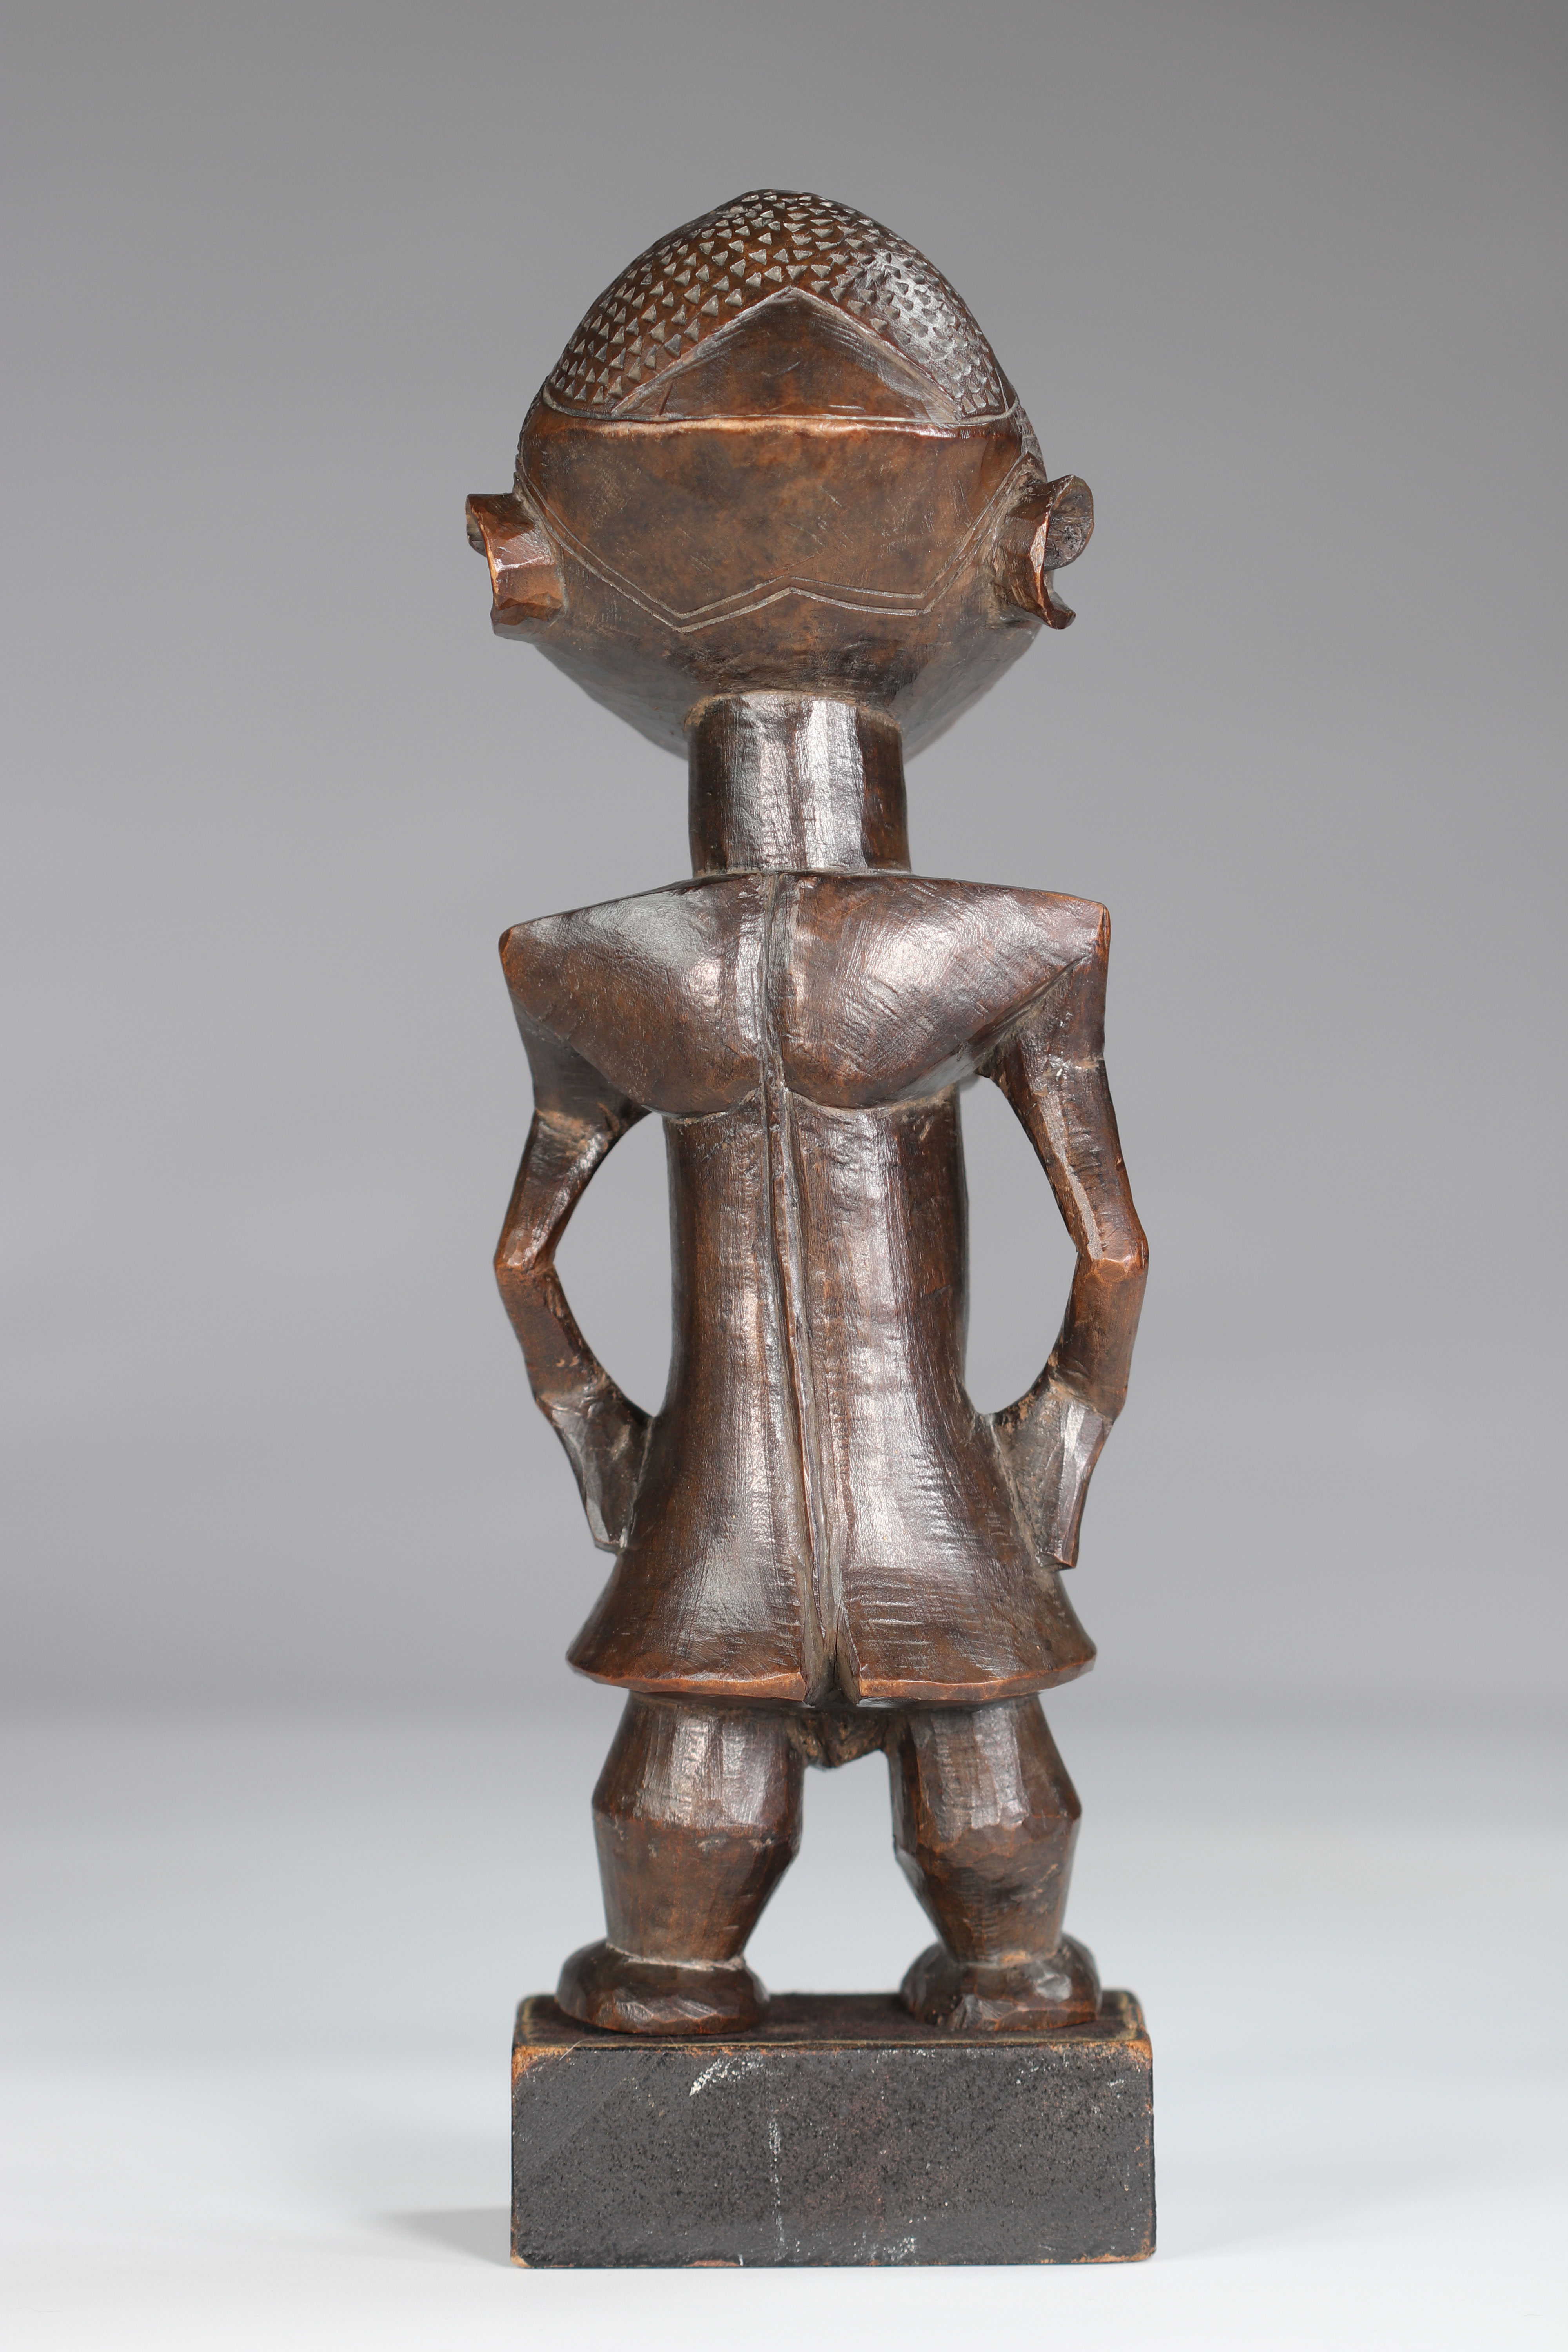 Rare Statue Wongo ca 1930 prov :, B. De Bruyn Netherlands. This high quality sculpture is distinguis - Image 5 of 5